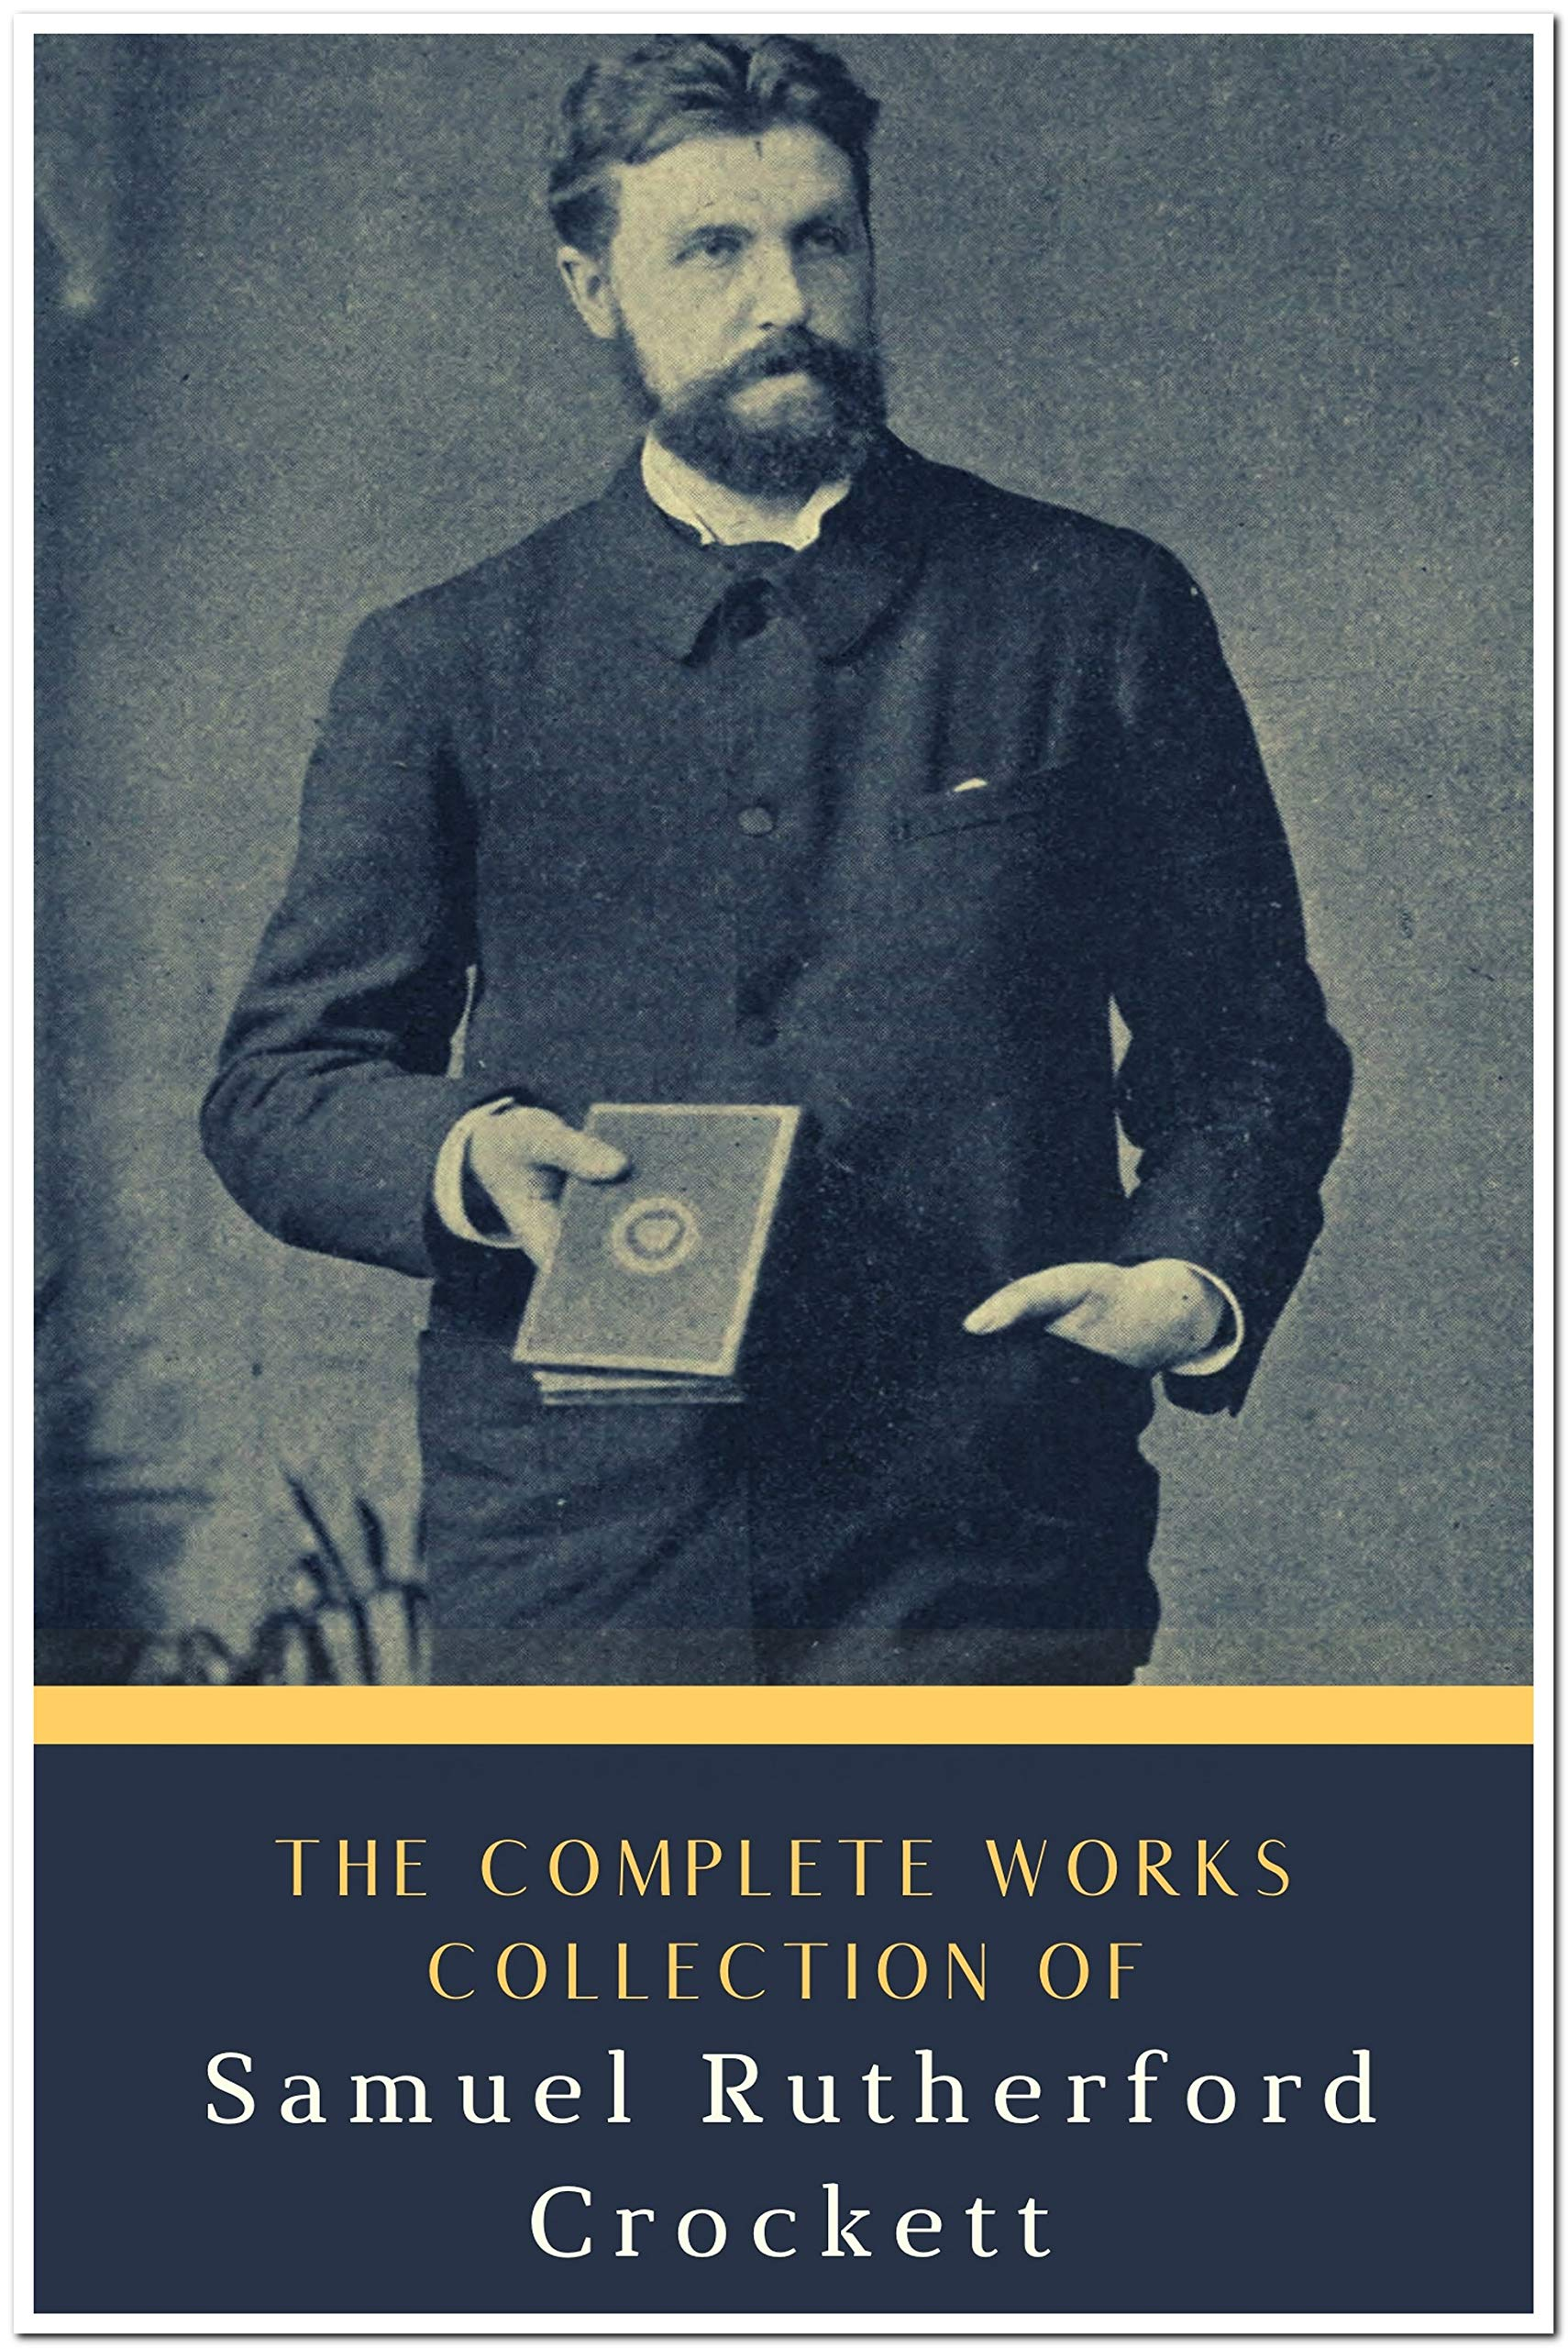 The Complete Works Collection of Samuel Rutherford Crockett (Annotated): Collection Includes Red Cap Tales, Sweethearts at Home, The Men of the Moss-Hags, Silver Sand, and More